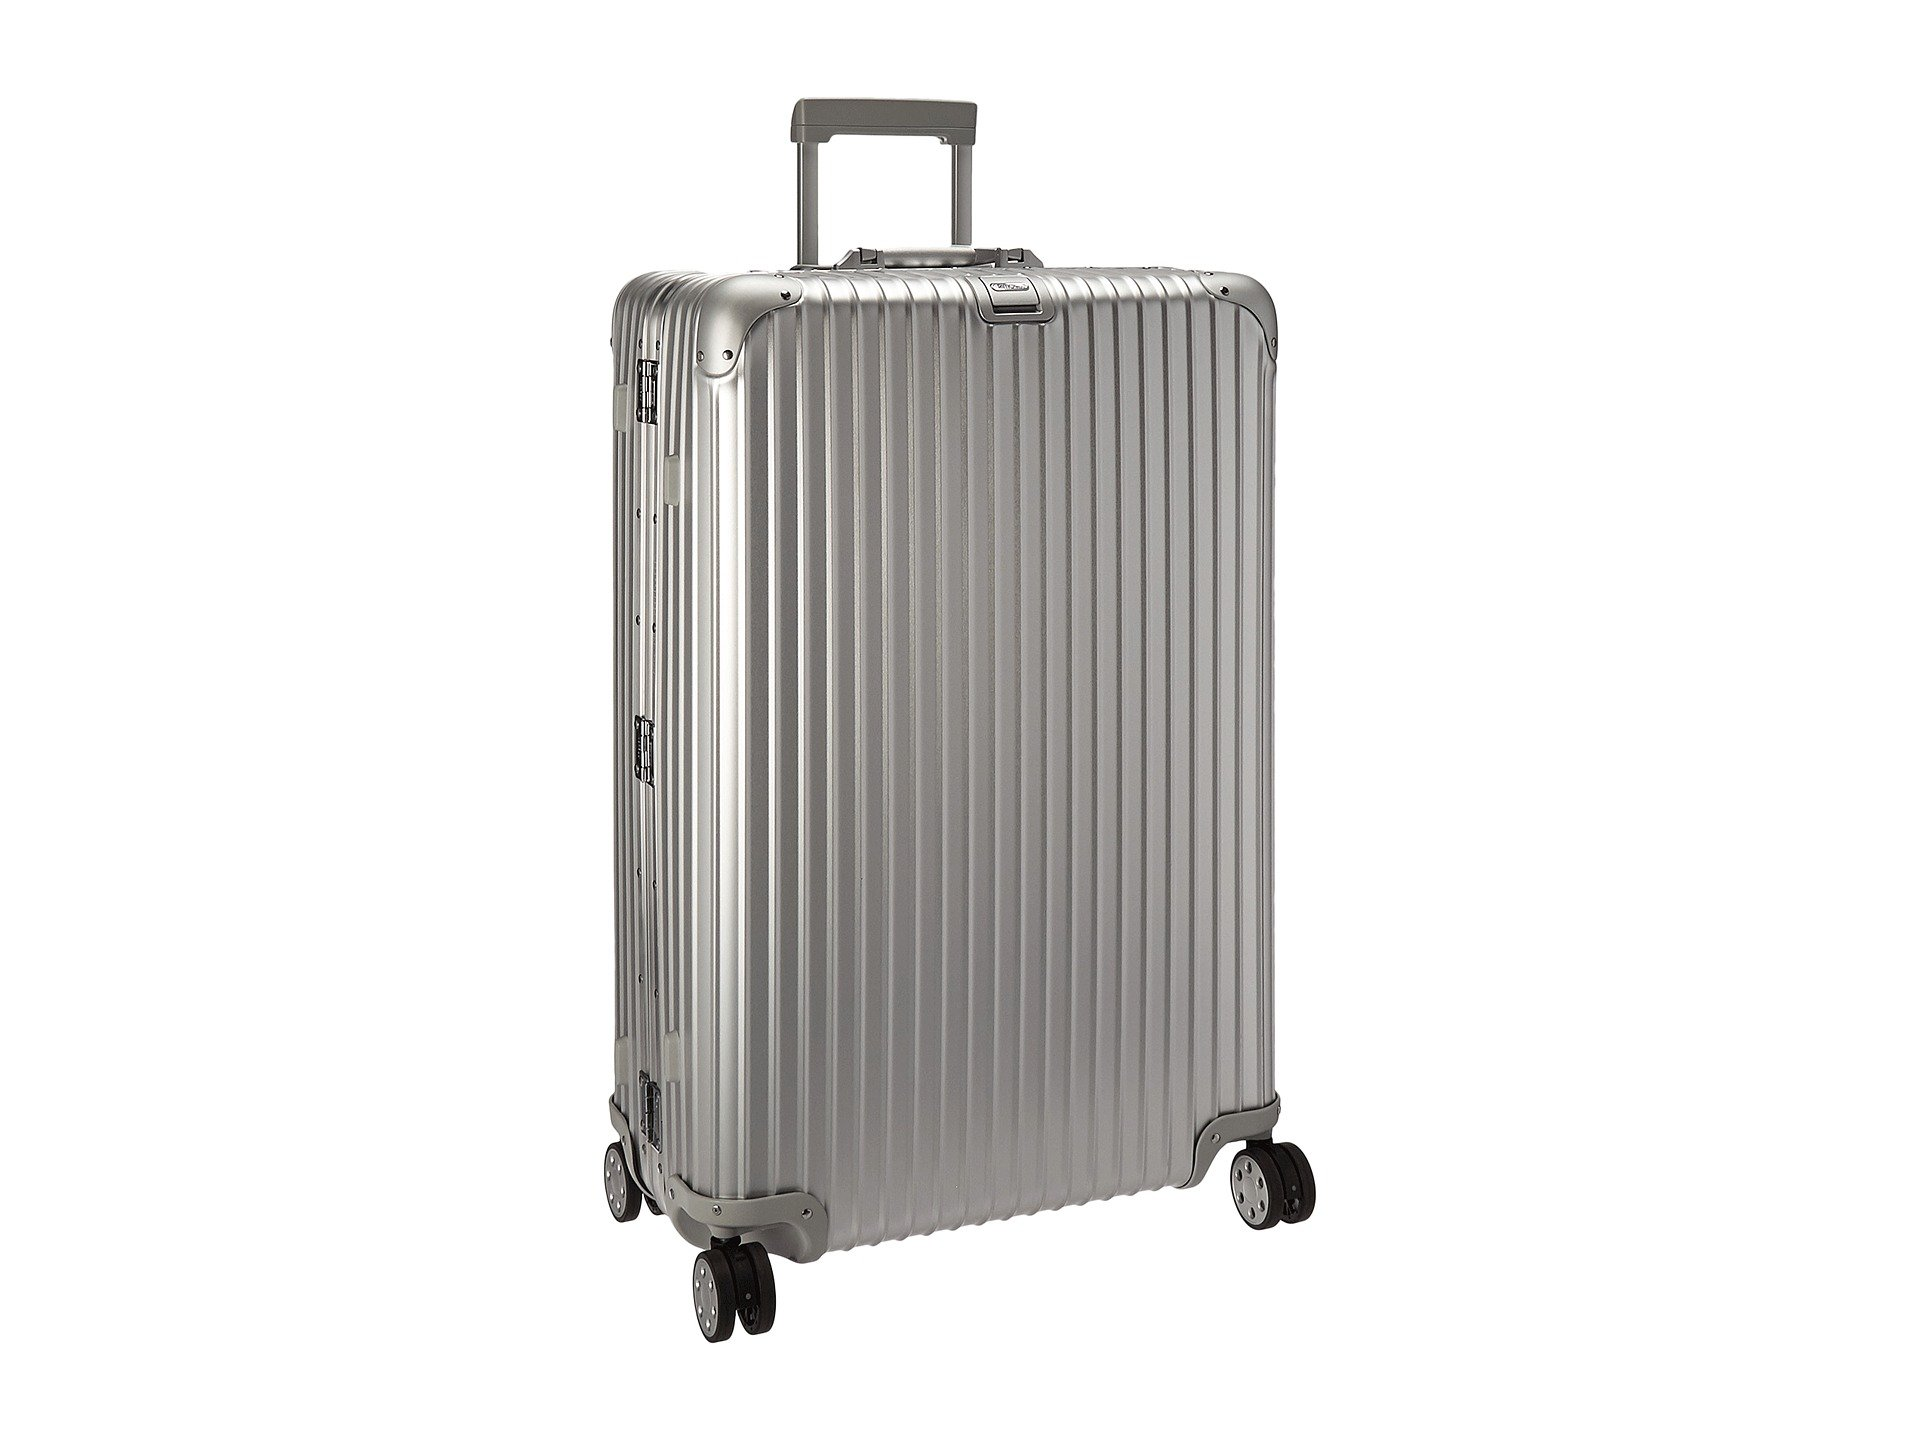 Rimowa Topas 32'' Multiwheel Luggage with Electronic Tag - 92377005